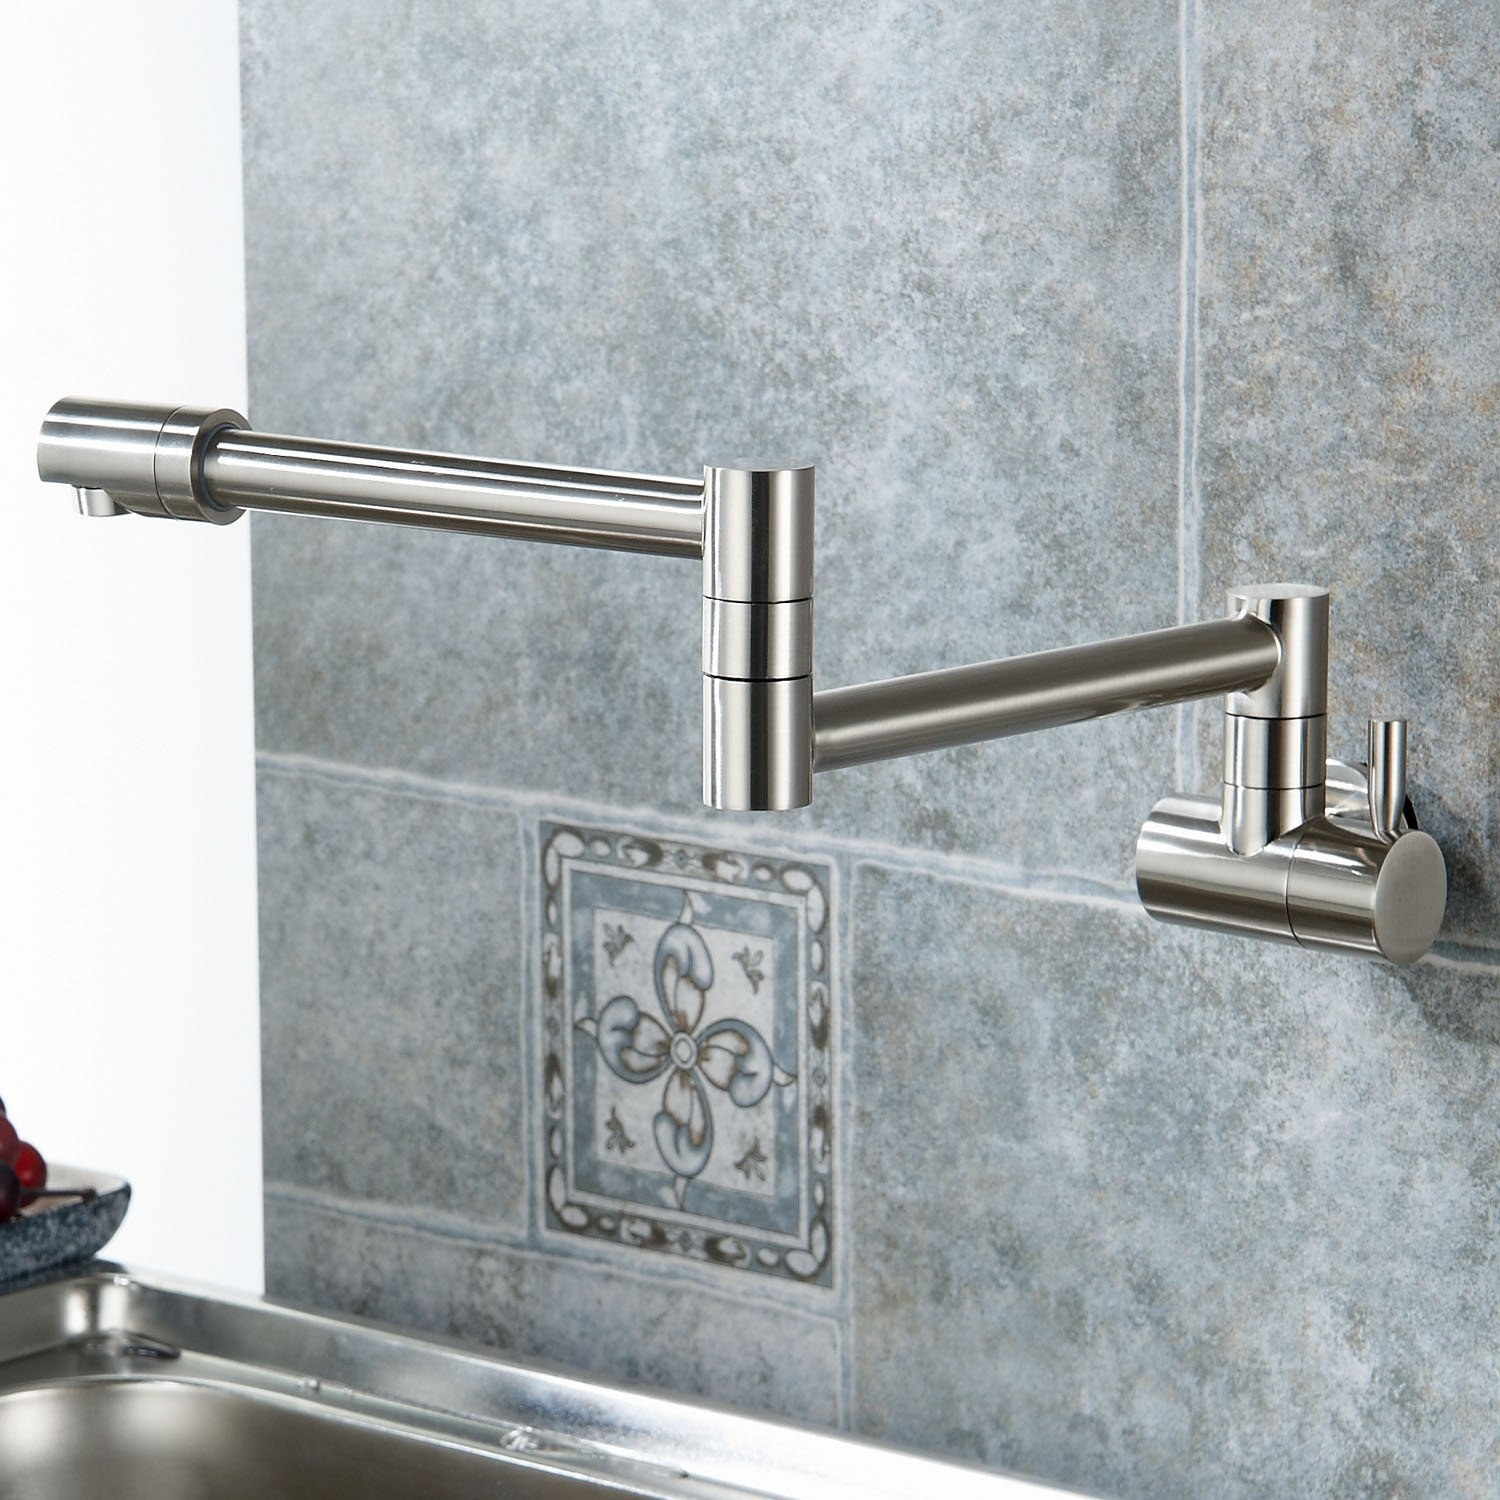 Mixer Tap Cartridge Kitchen Kitchen: Buy Online from Fishpond.co.nz